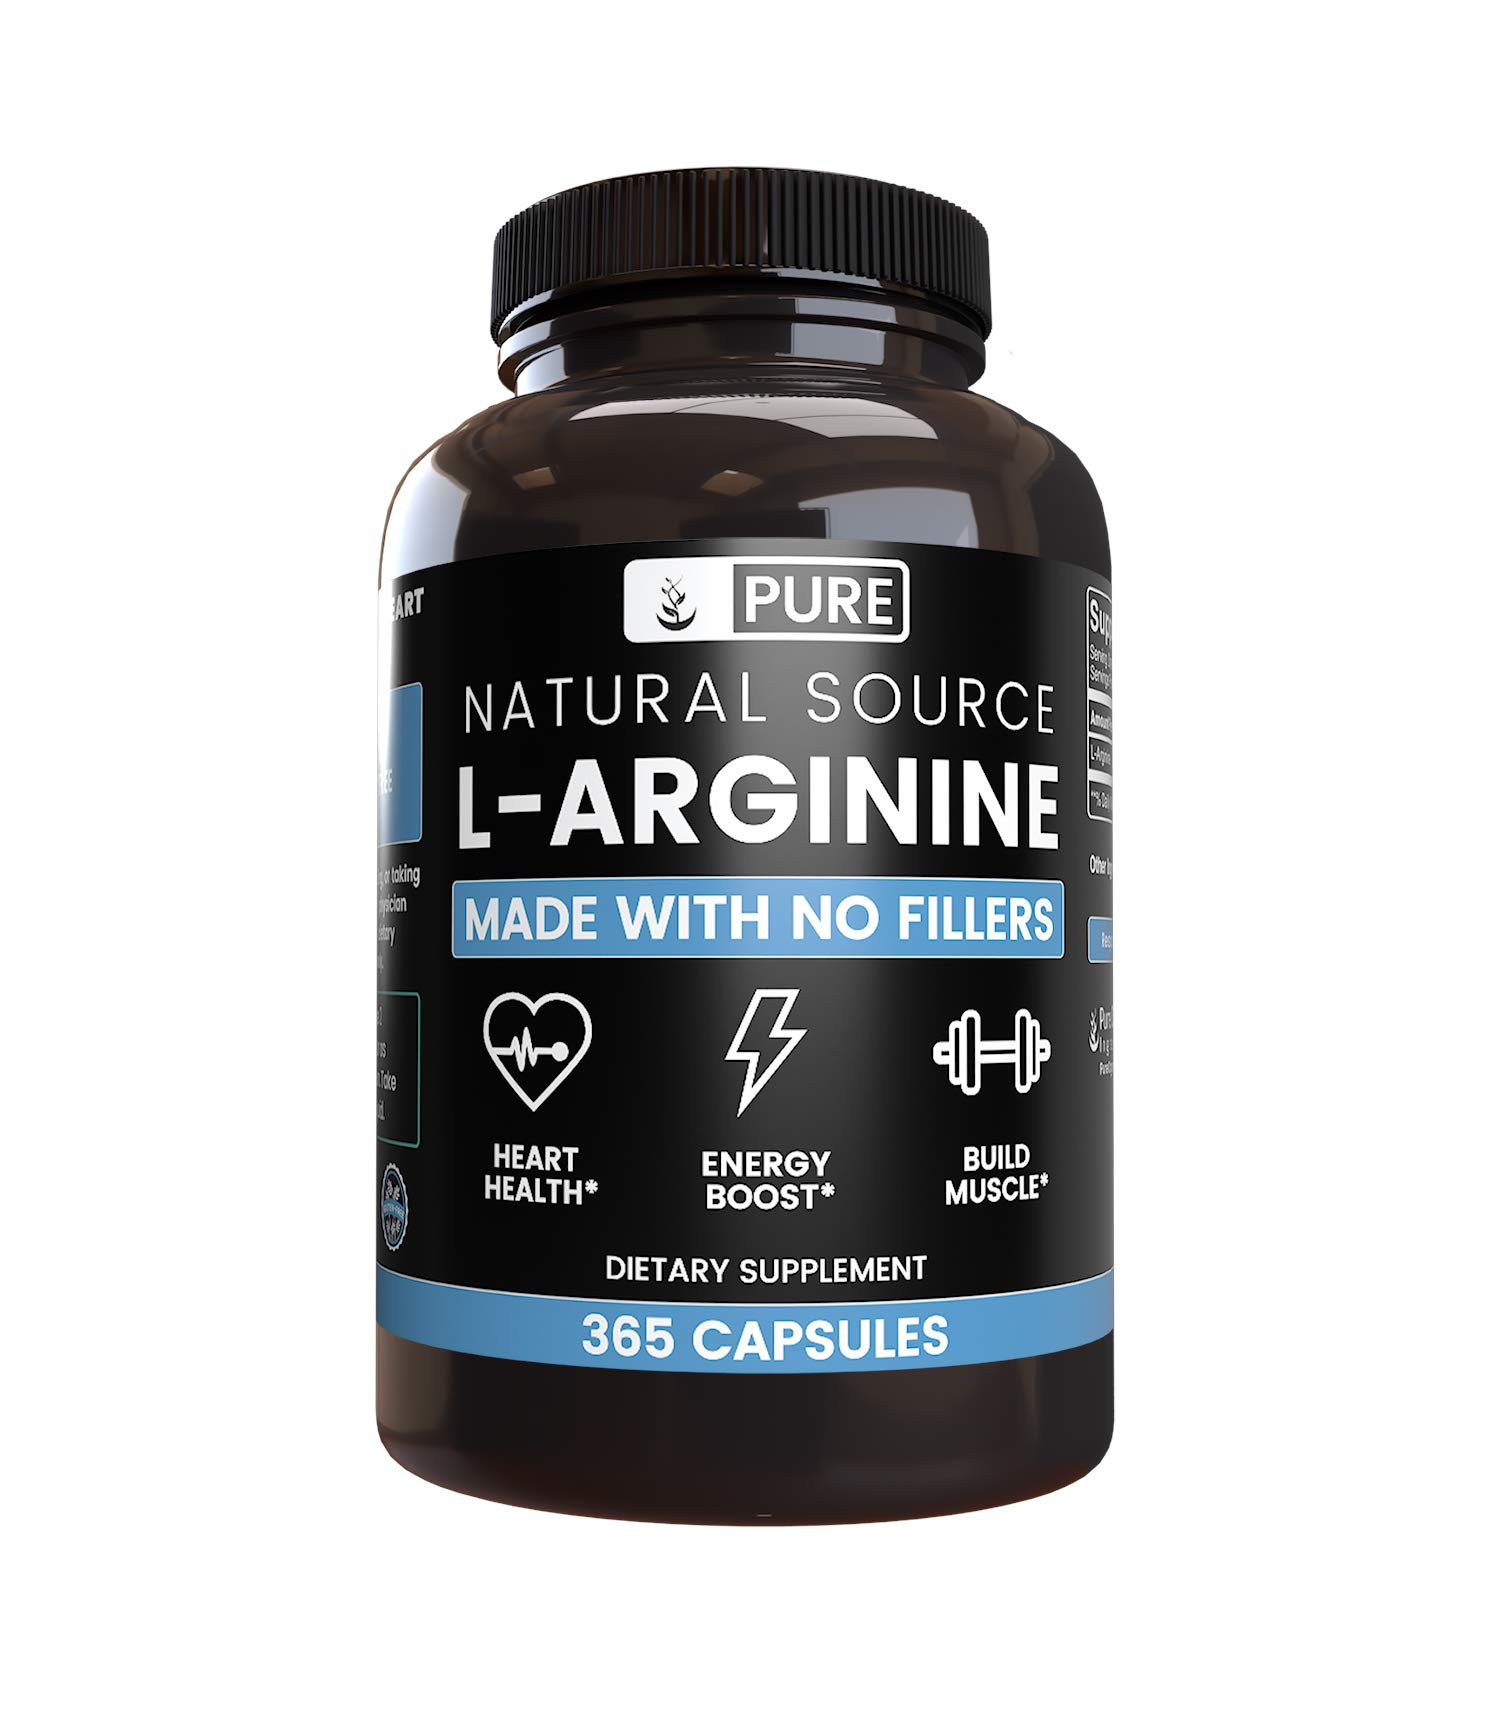 100% Pure L-Arginine | 90-Day Supply |365 Capsules |No Magnesium or Rice Filler, Nitrous Oxide Booster, Made in USA, Gluten-Free, Vegetarian, 800mg Extra Potent & All-Natural L-Arginine by Pure Organic Ingredients